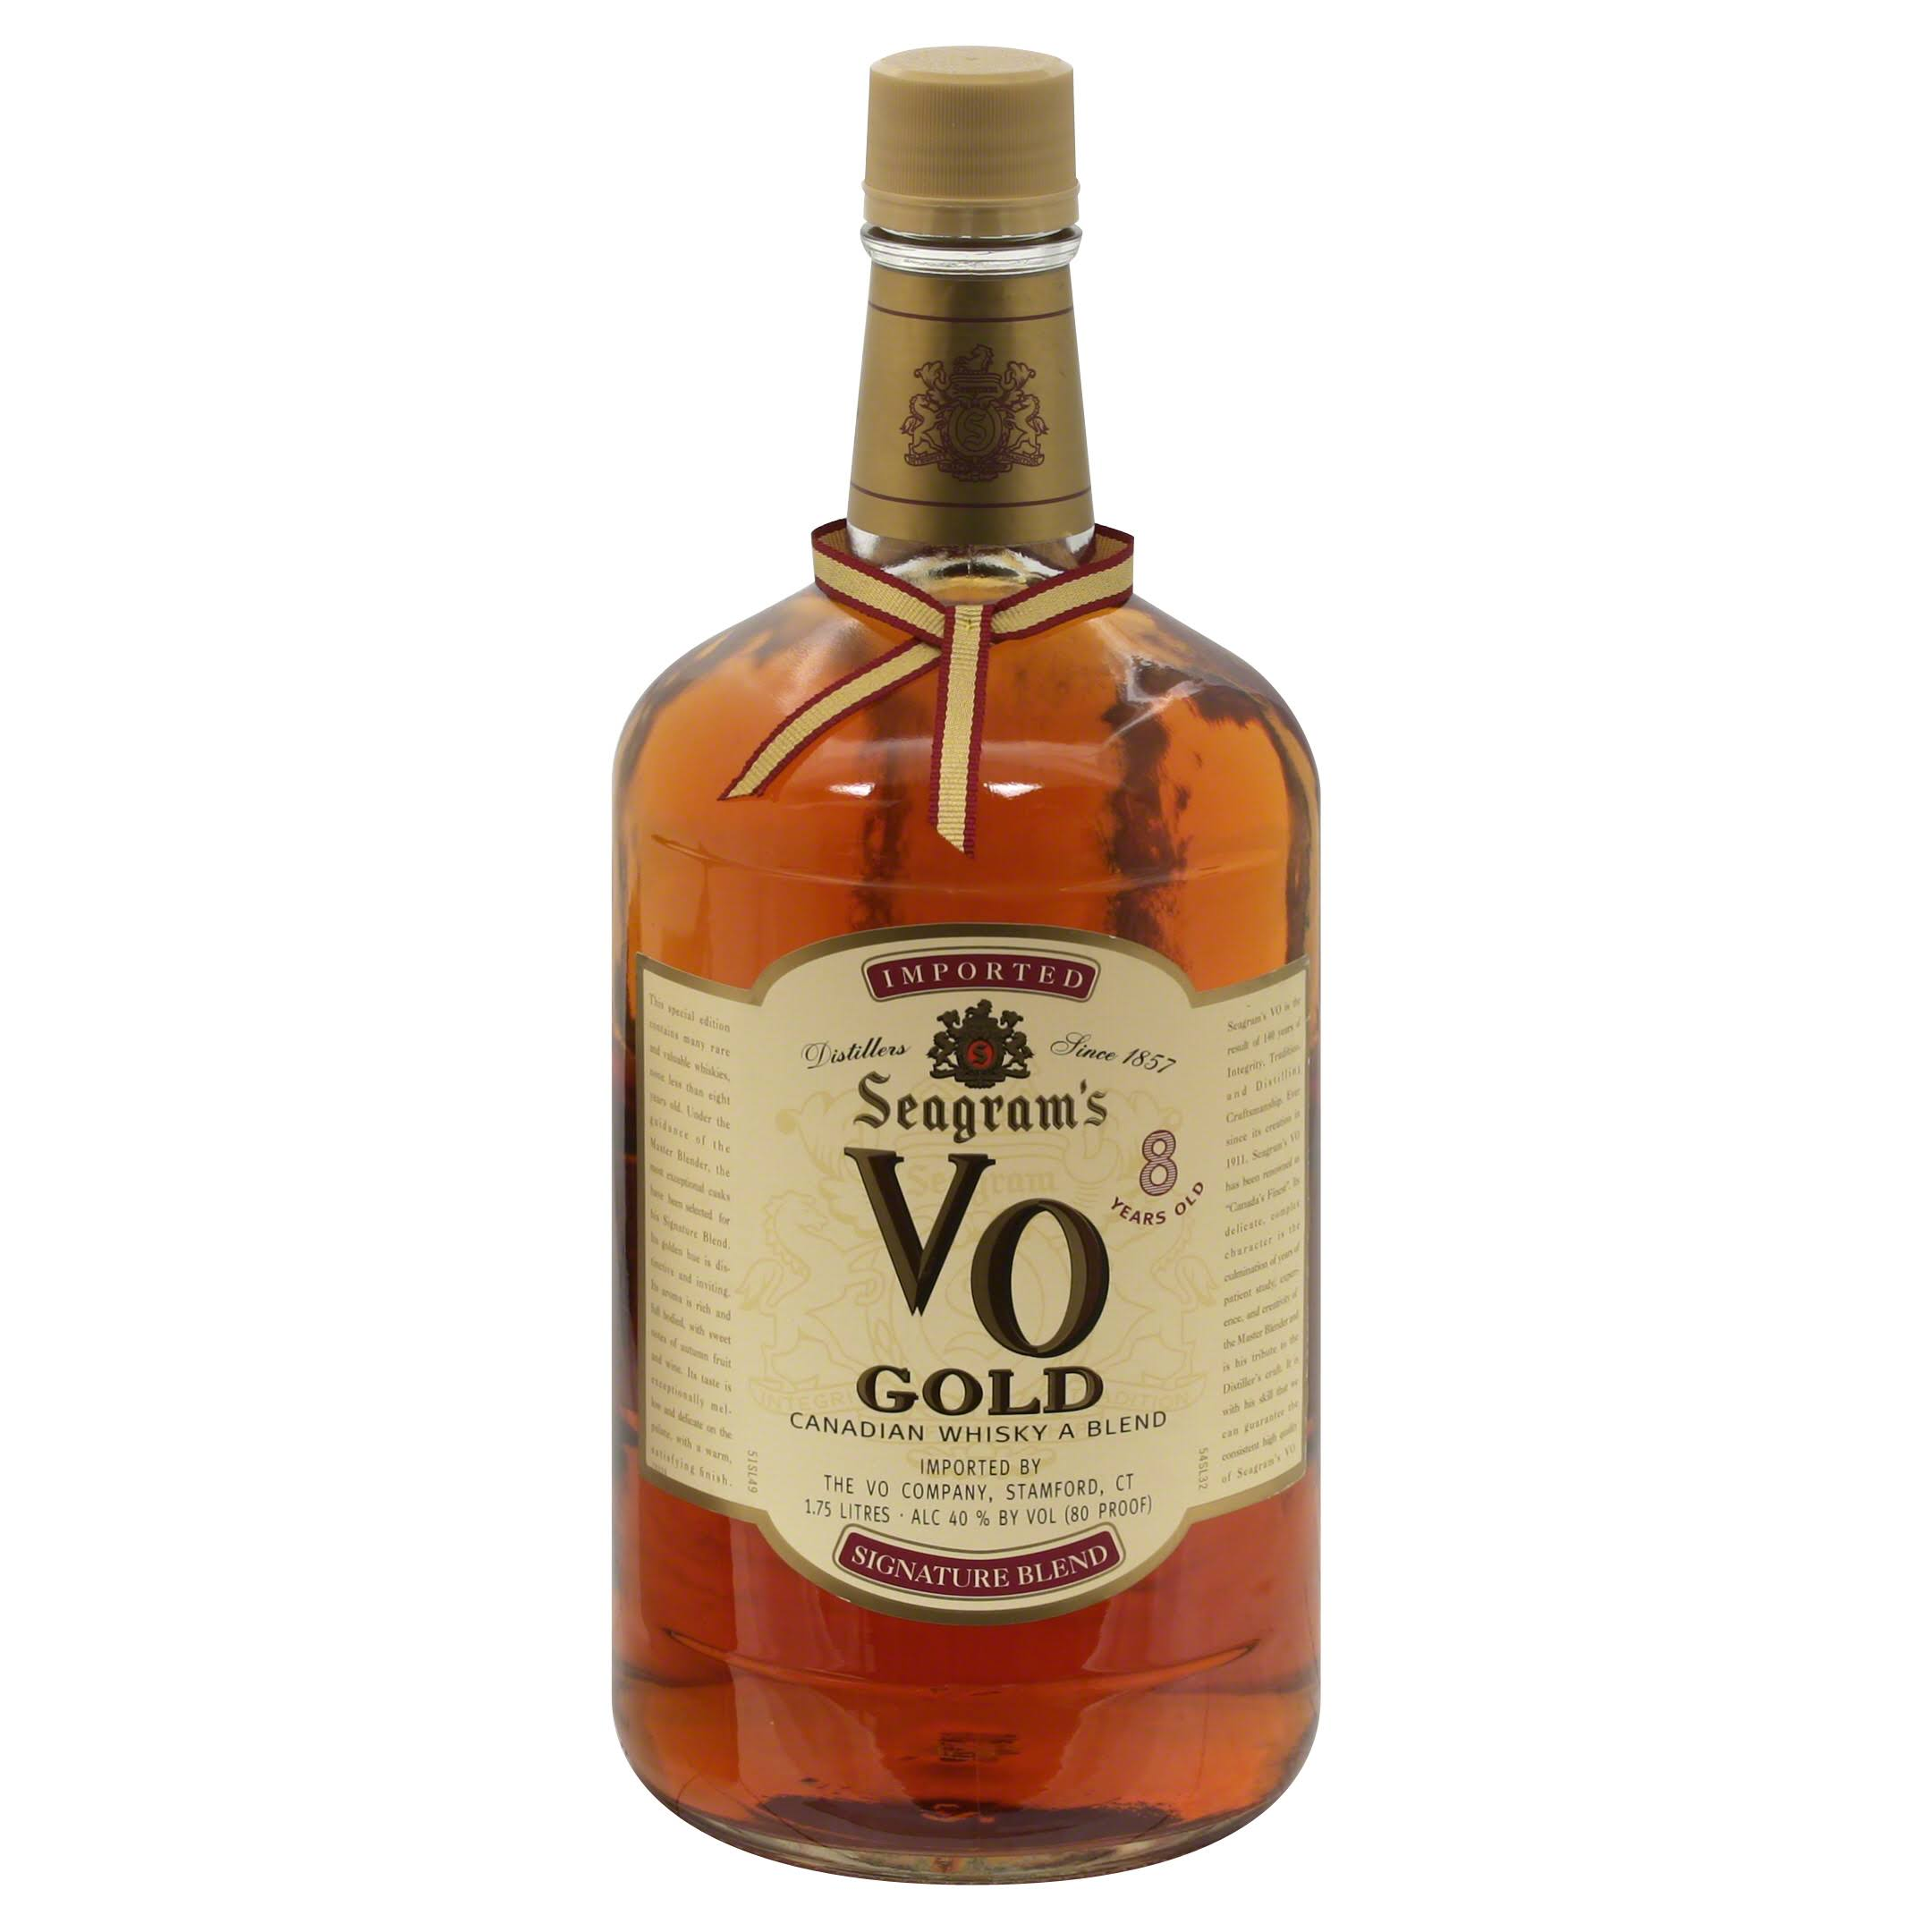 Seagram's Vo Gold Whisky A Blend